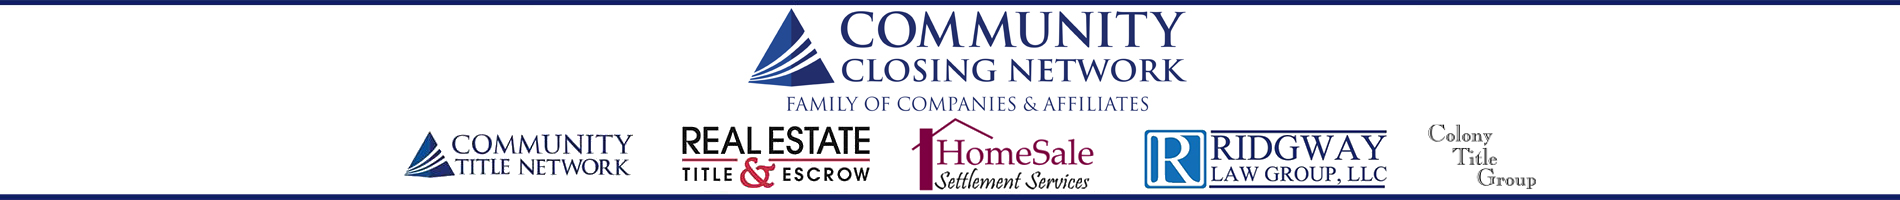 community closing network family of companies and affiliates logos